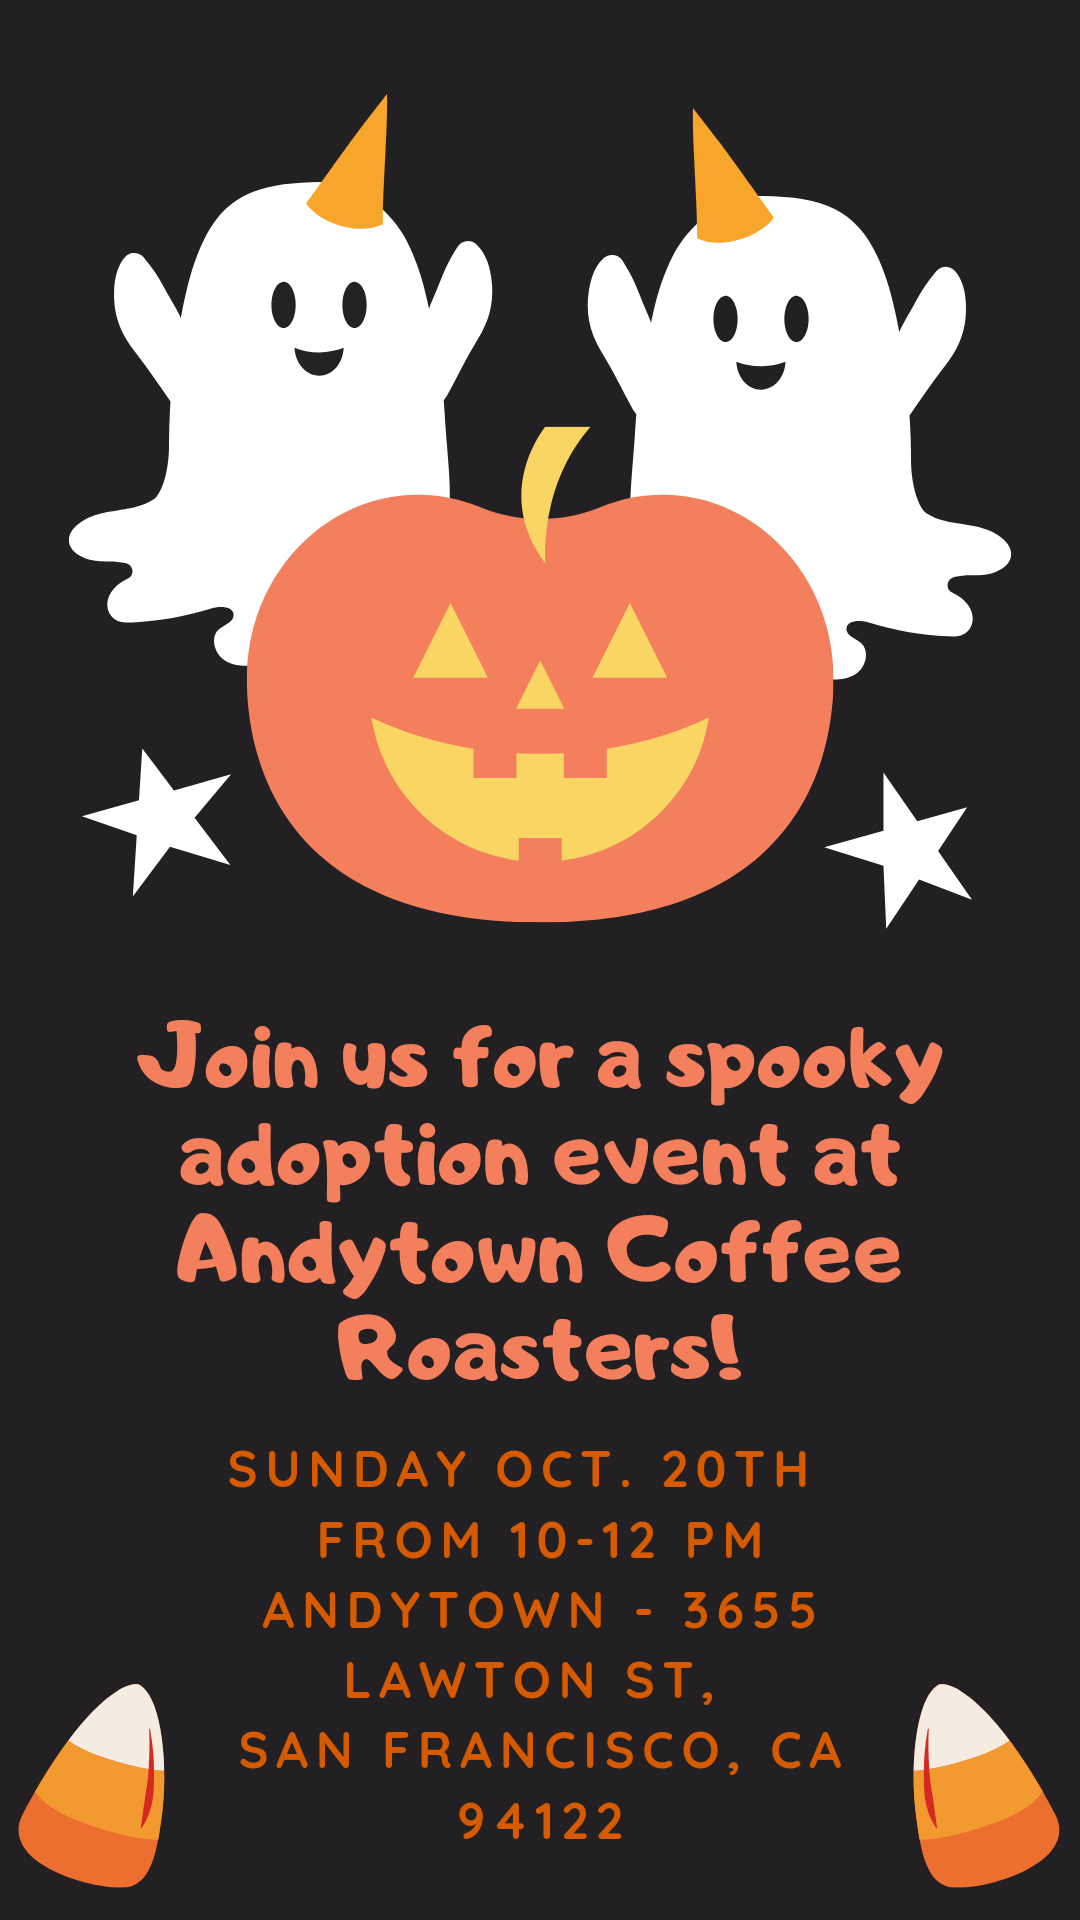 Adoption Event at Andytown Coffee Roasters! @ Andytown Coffee Roasters